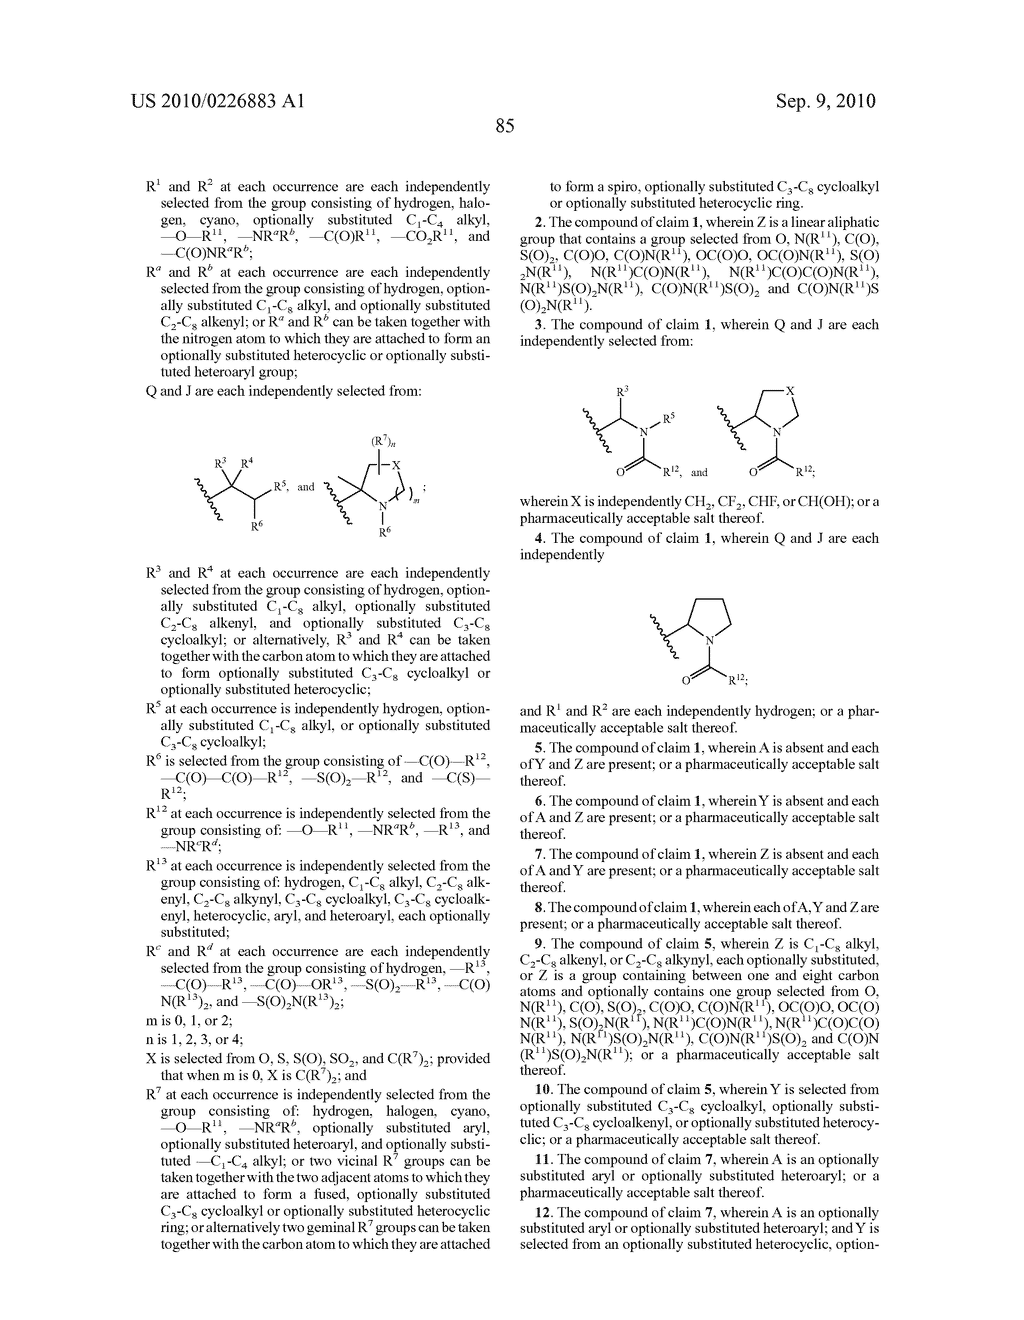 LINKED DIIMIDAZOLE DERIVATIVES - diagram, schematic, and image 86